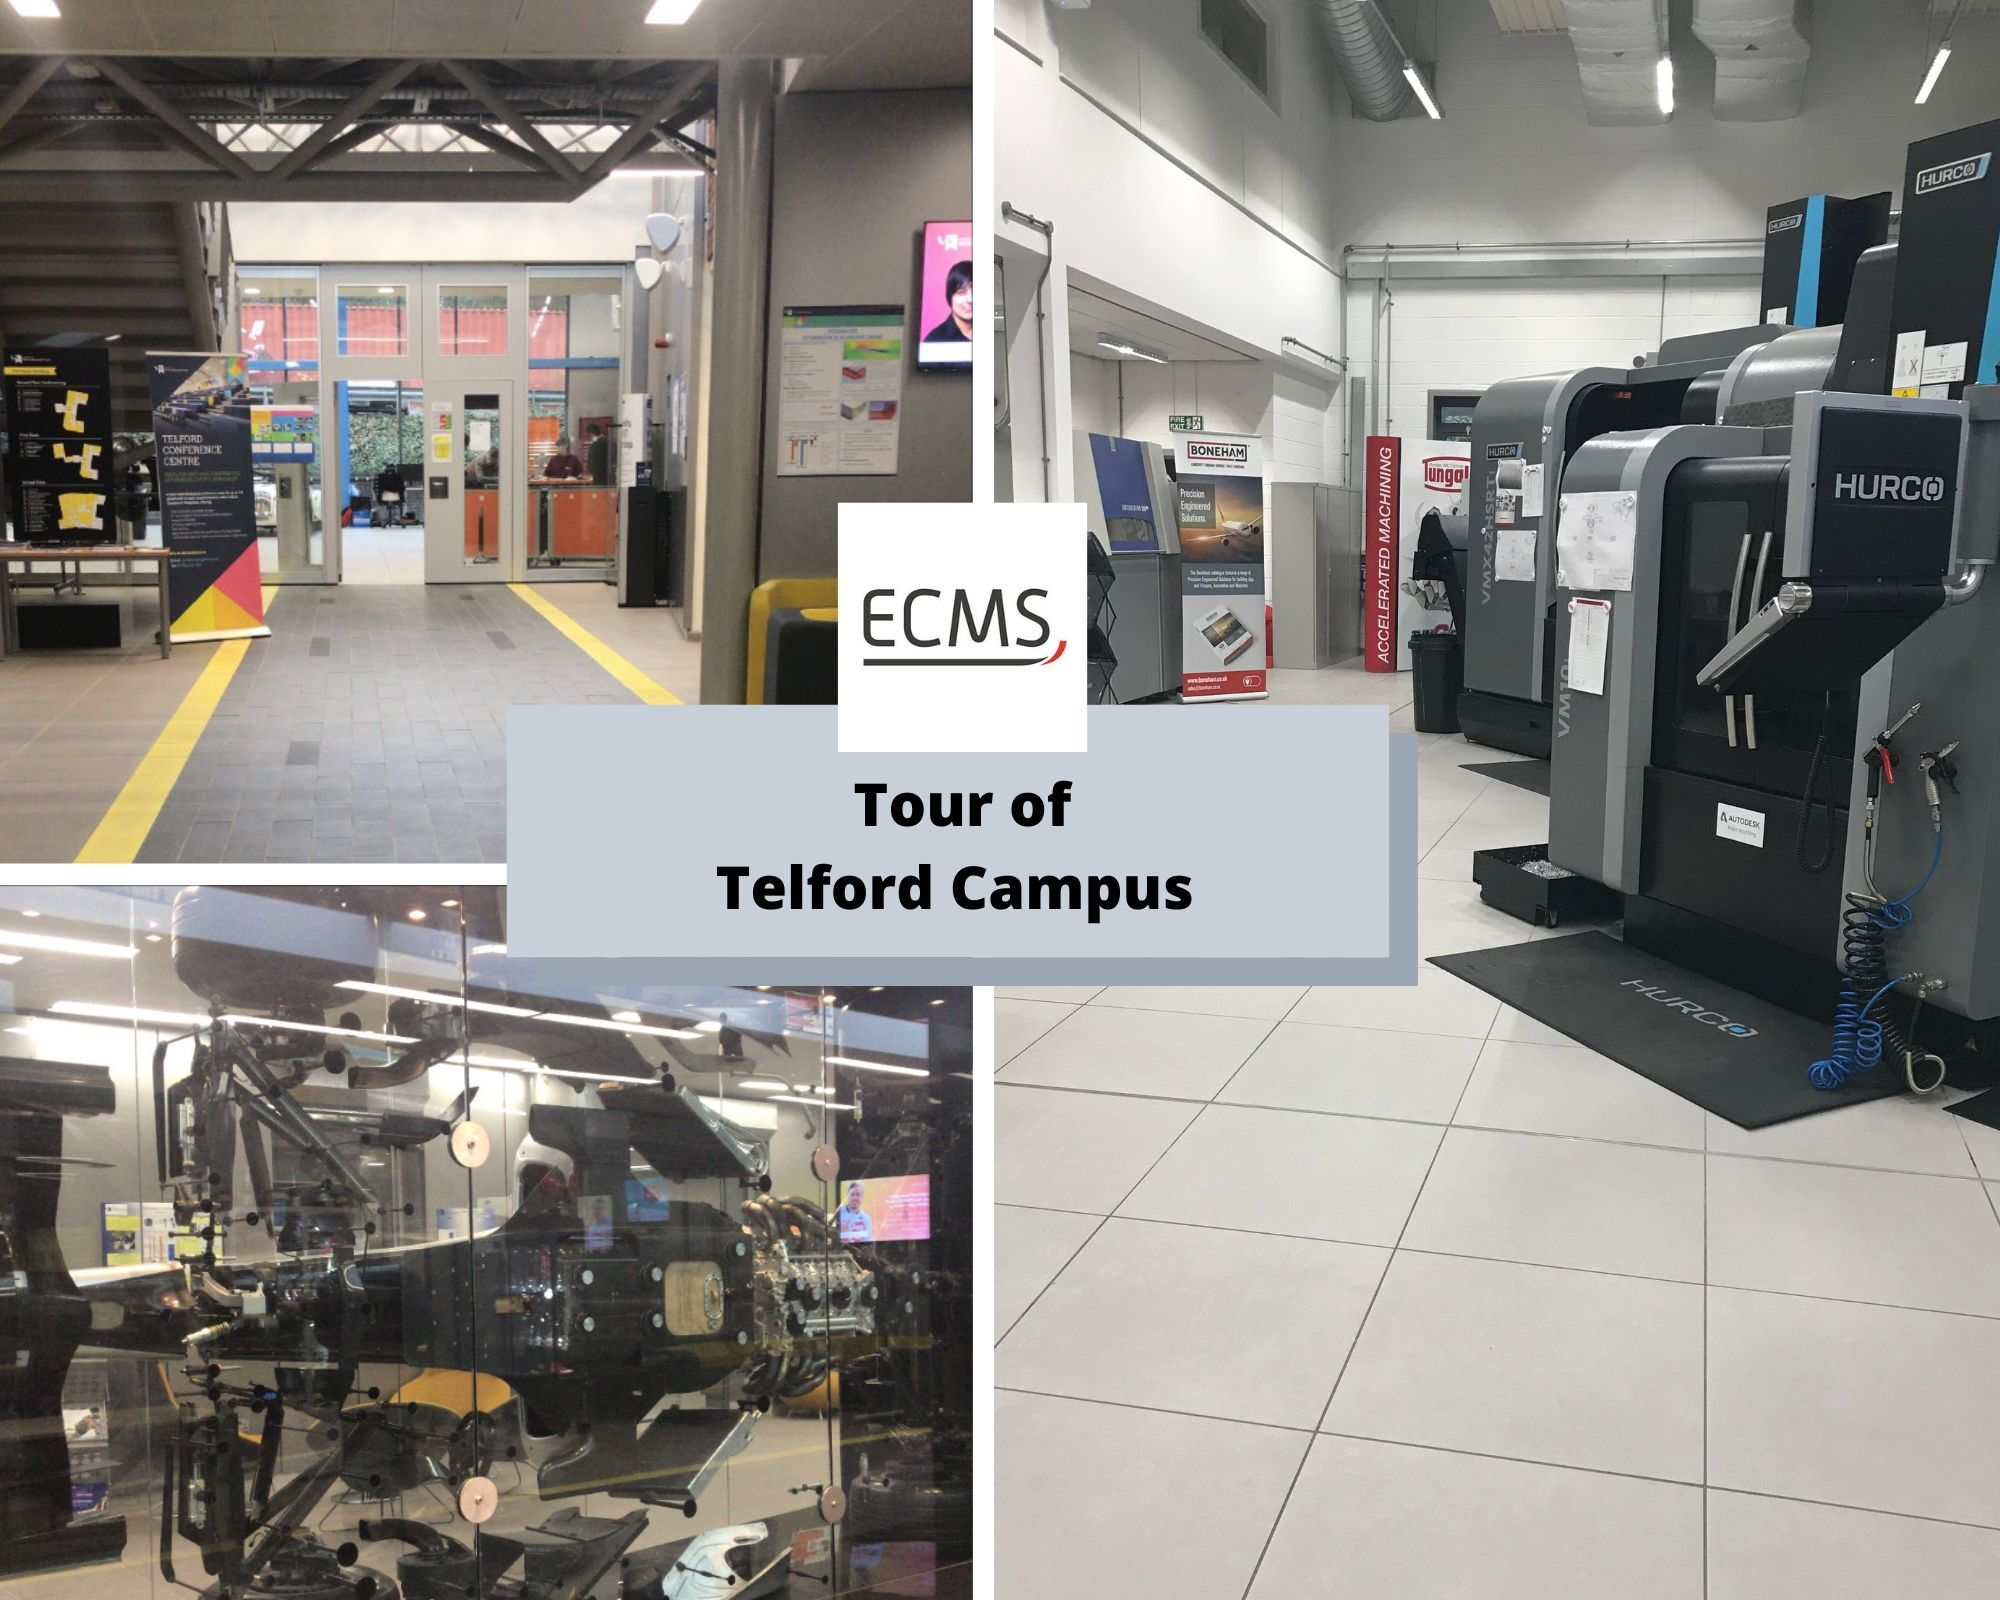 Telford Campus Tour